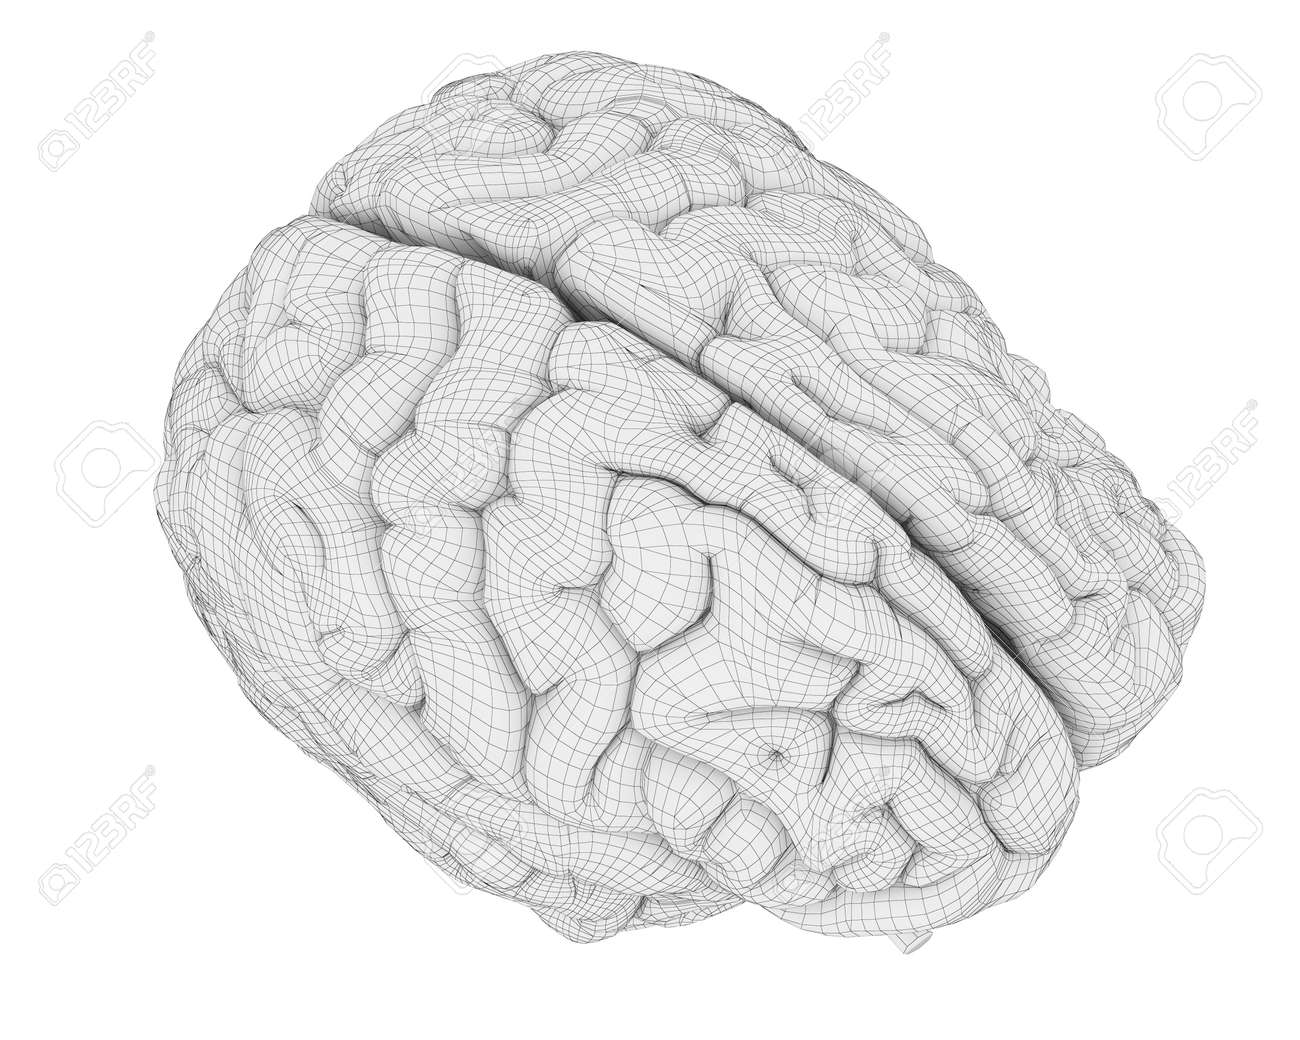 3d Rendered Medically Accurate Illustration Of The Brain Anatomy ...